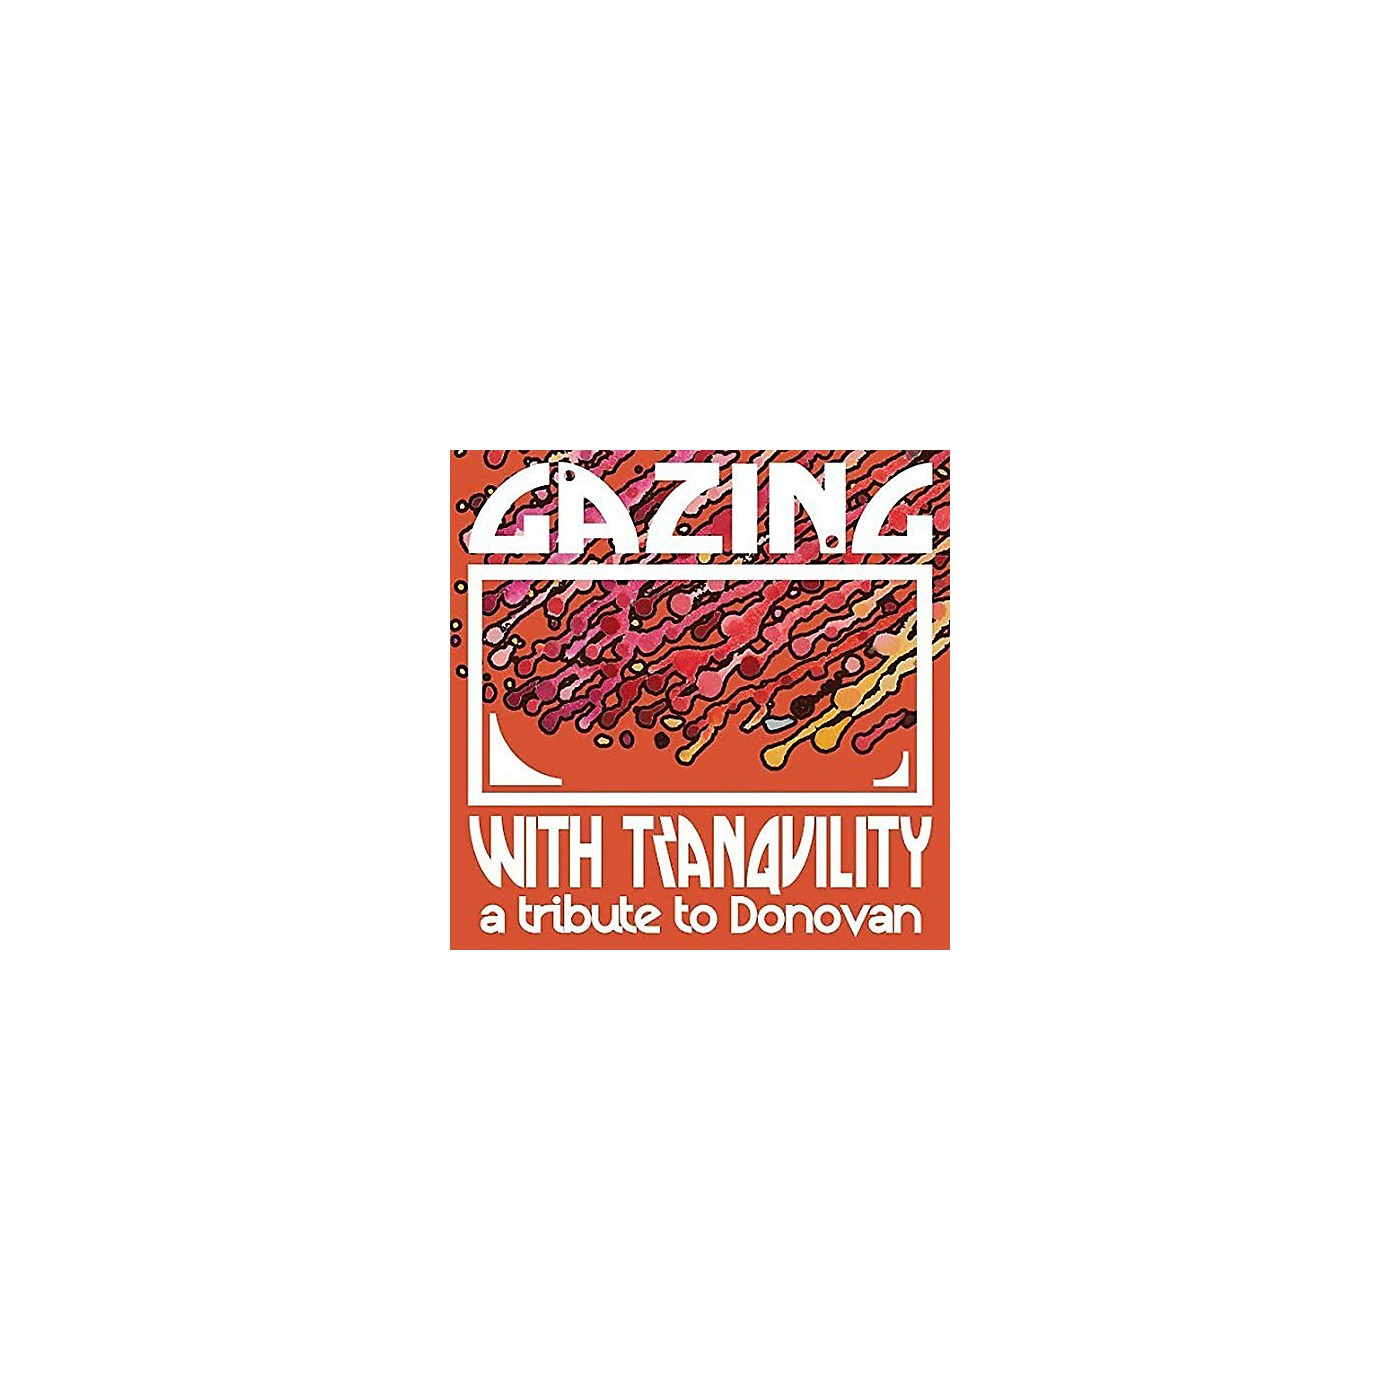 Alliance Various Artists - Gazing With Tranquility: Tribute To Donovan / Var thumbnail